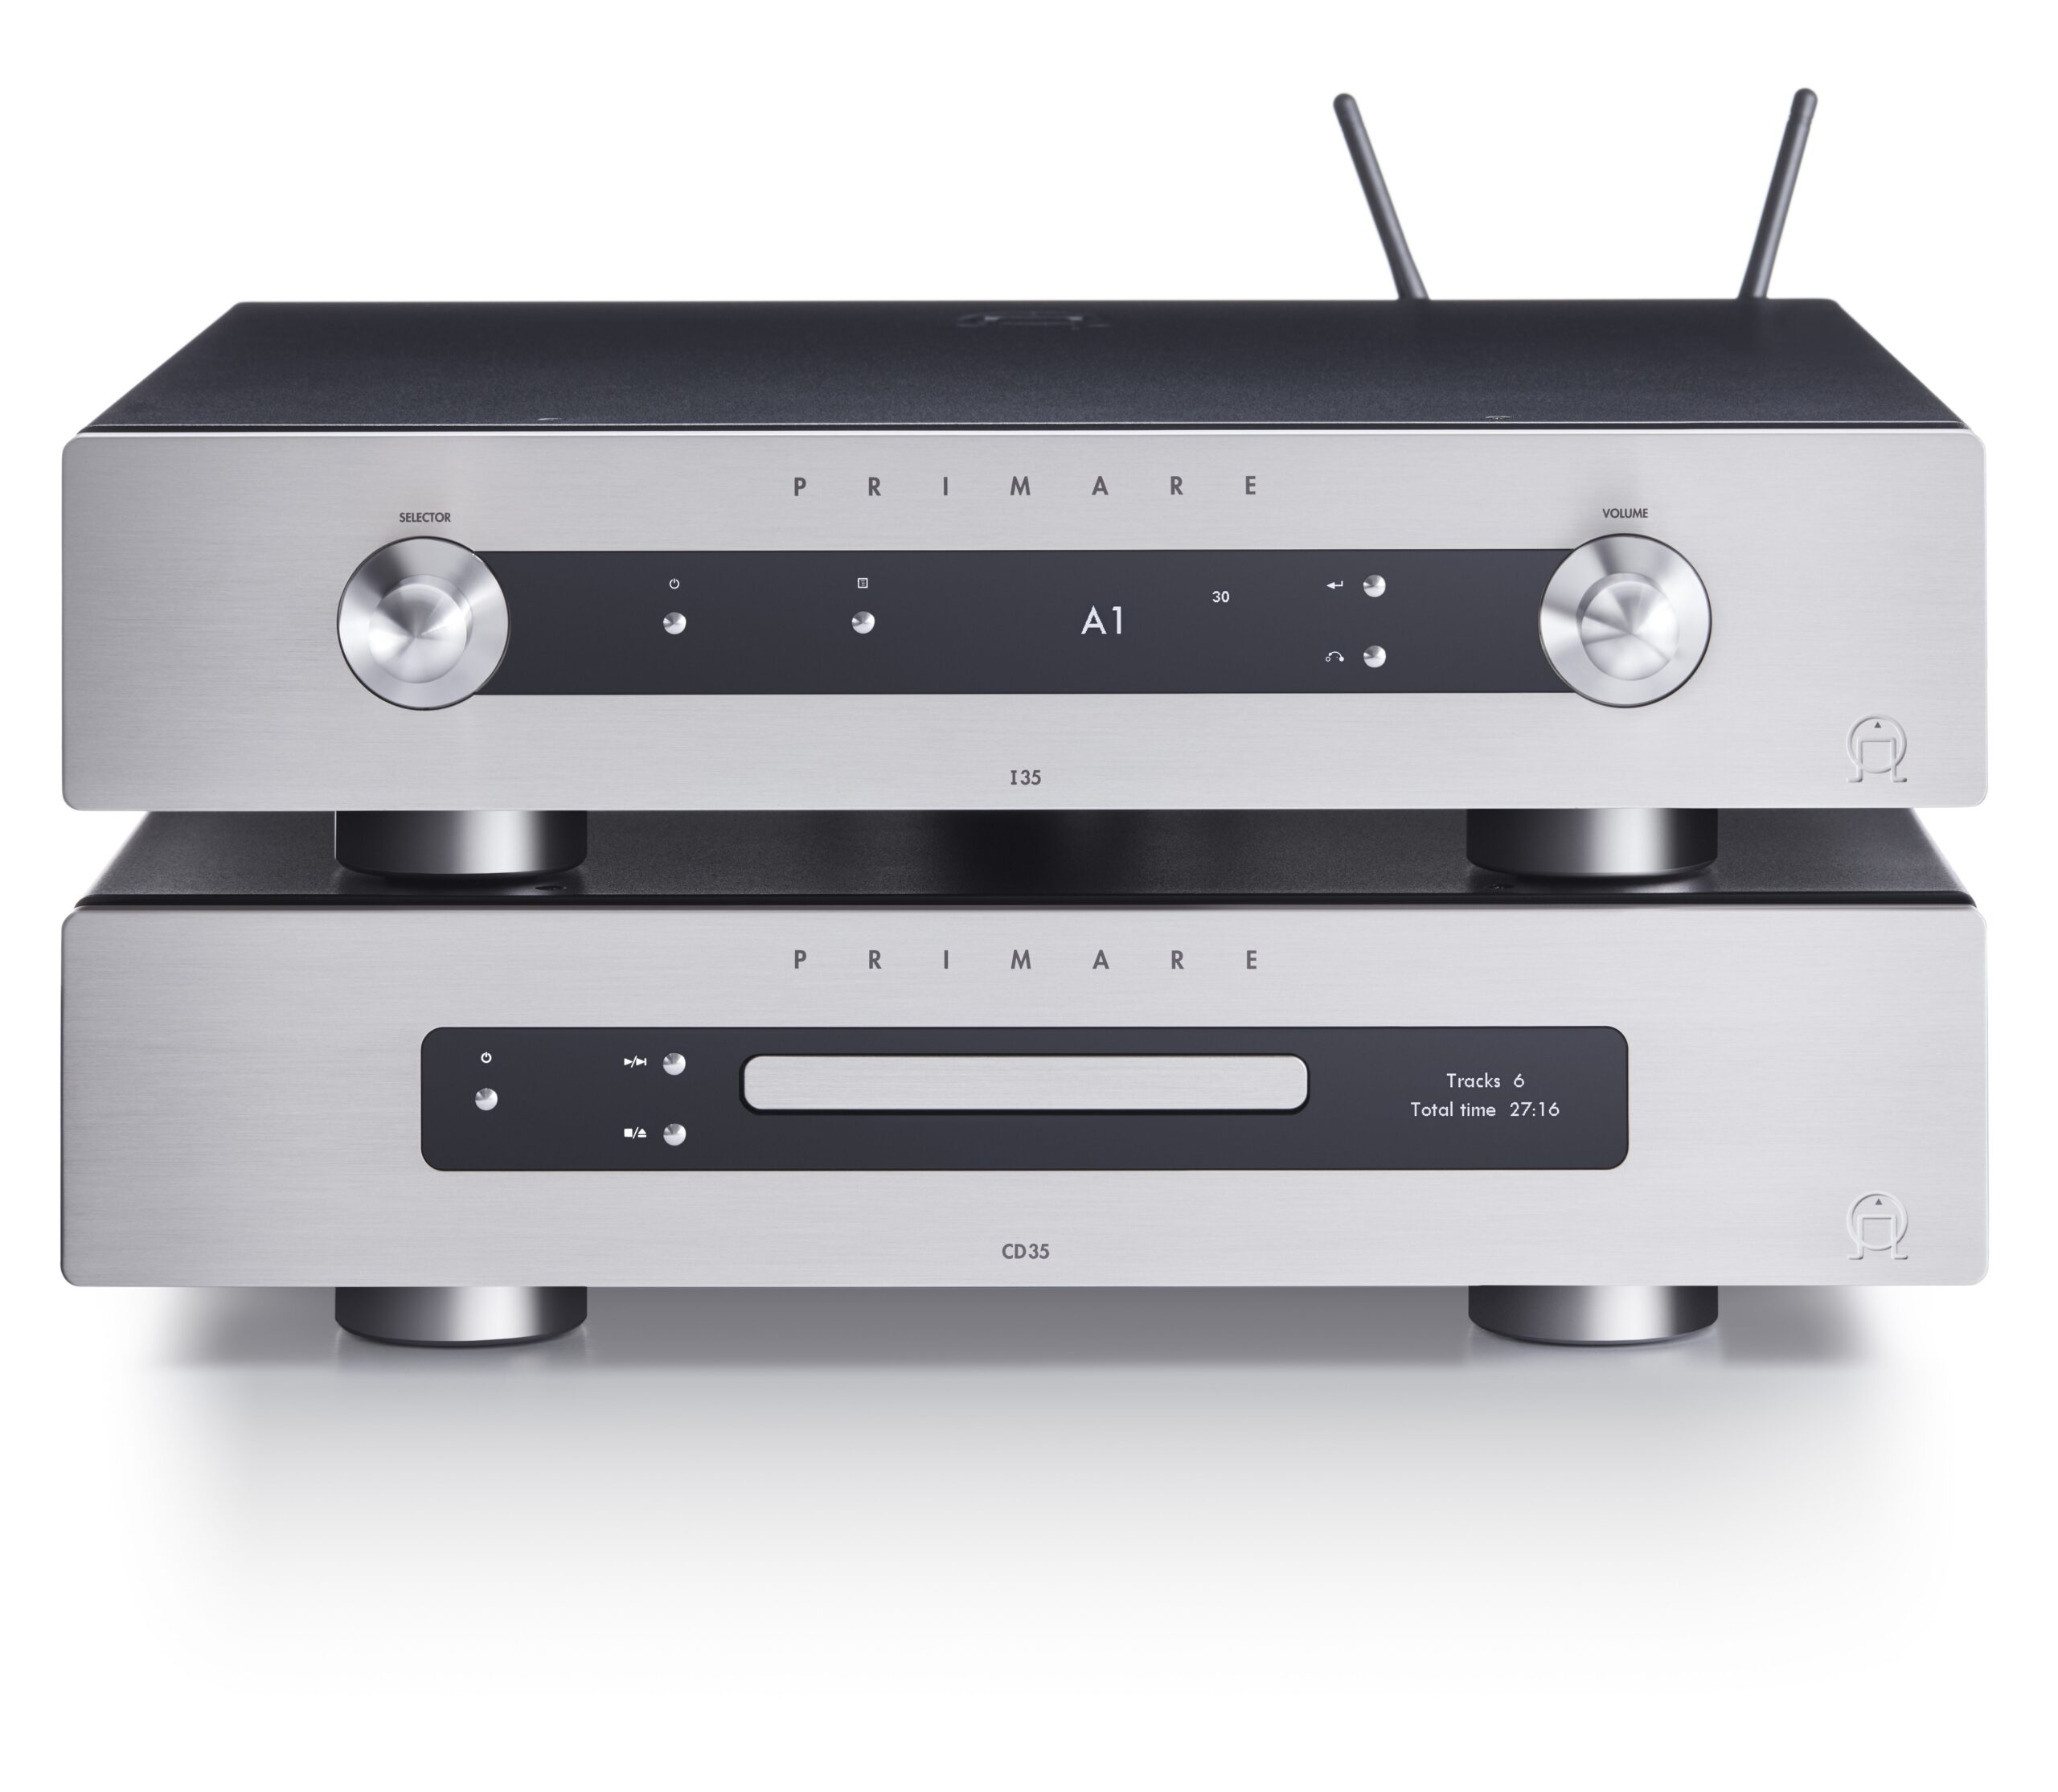 Primare I35 Prisma modular integrated amplifier and network player, CD35 CD and network player